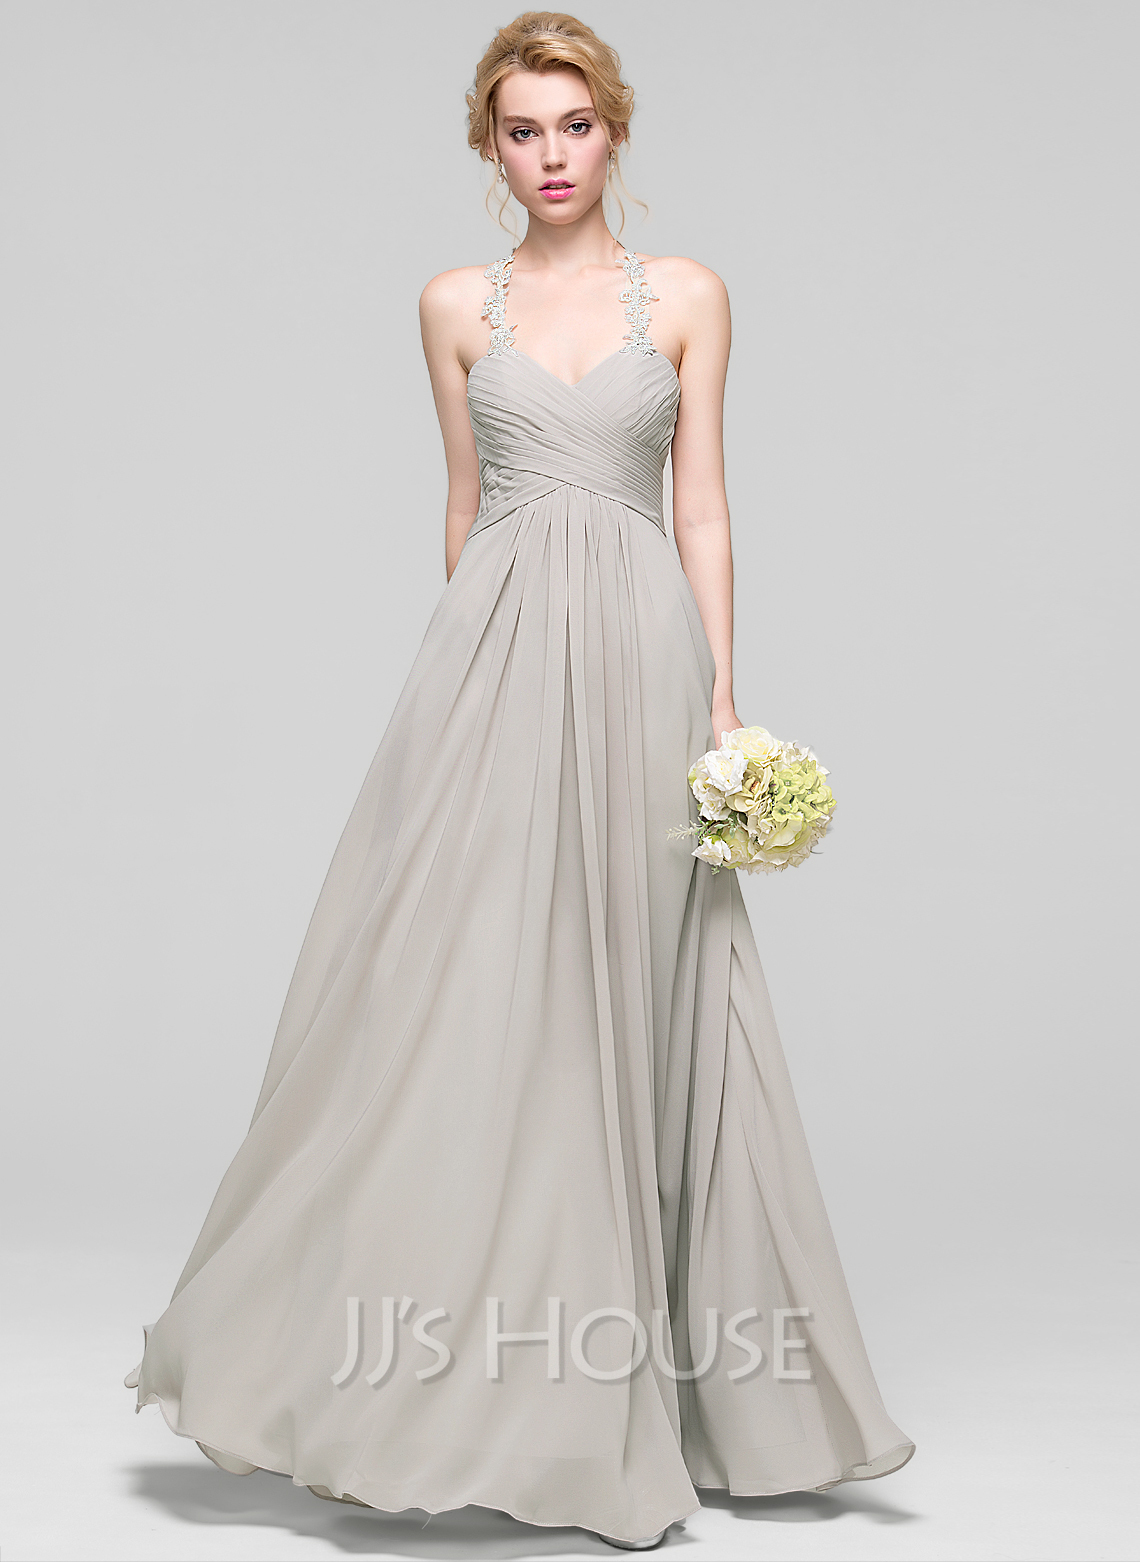 Cheap Special Occasion Dresses c3 party wedding dresses A Line Princess Sweetheart Floor Length Prom Dress With Ruffle